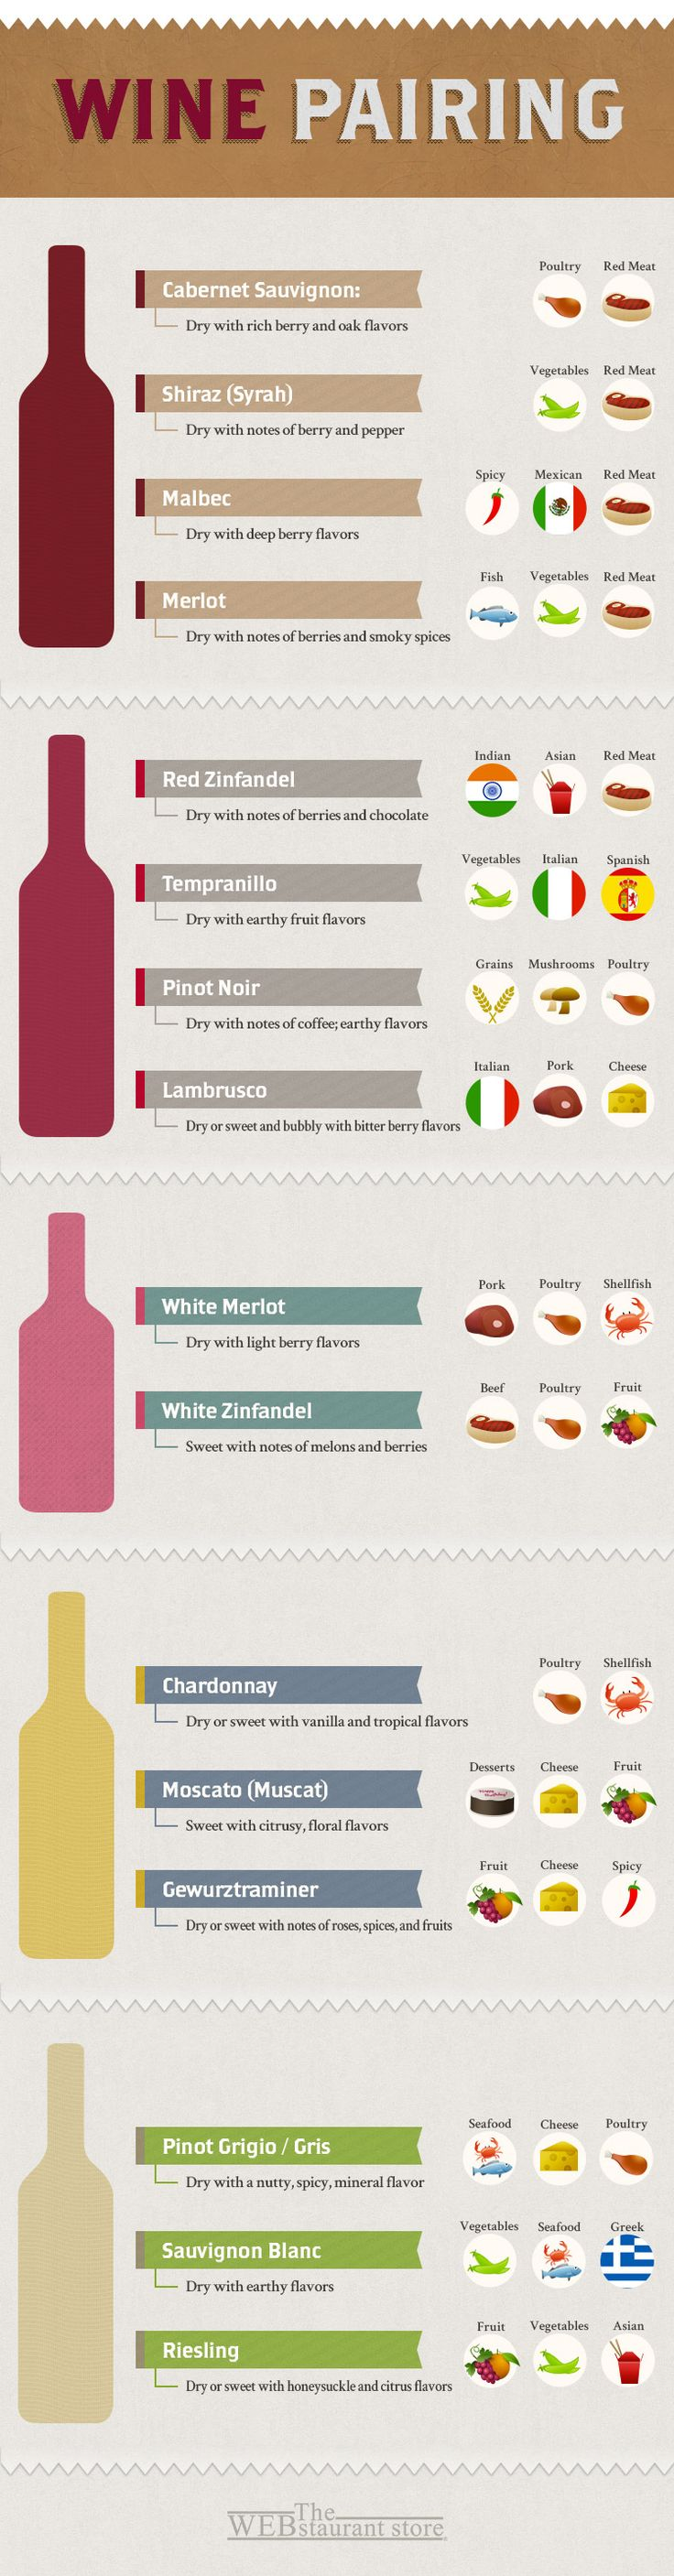 An amazing guide to #wine pairings.